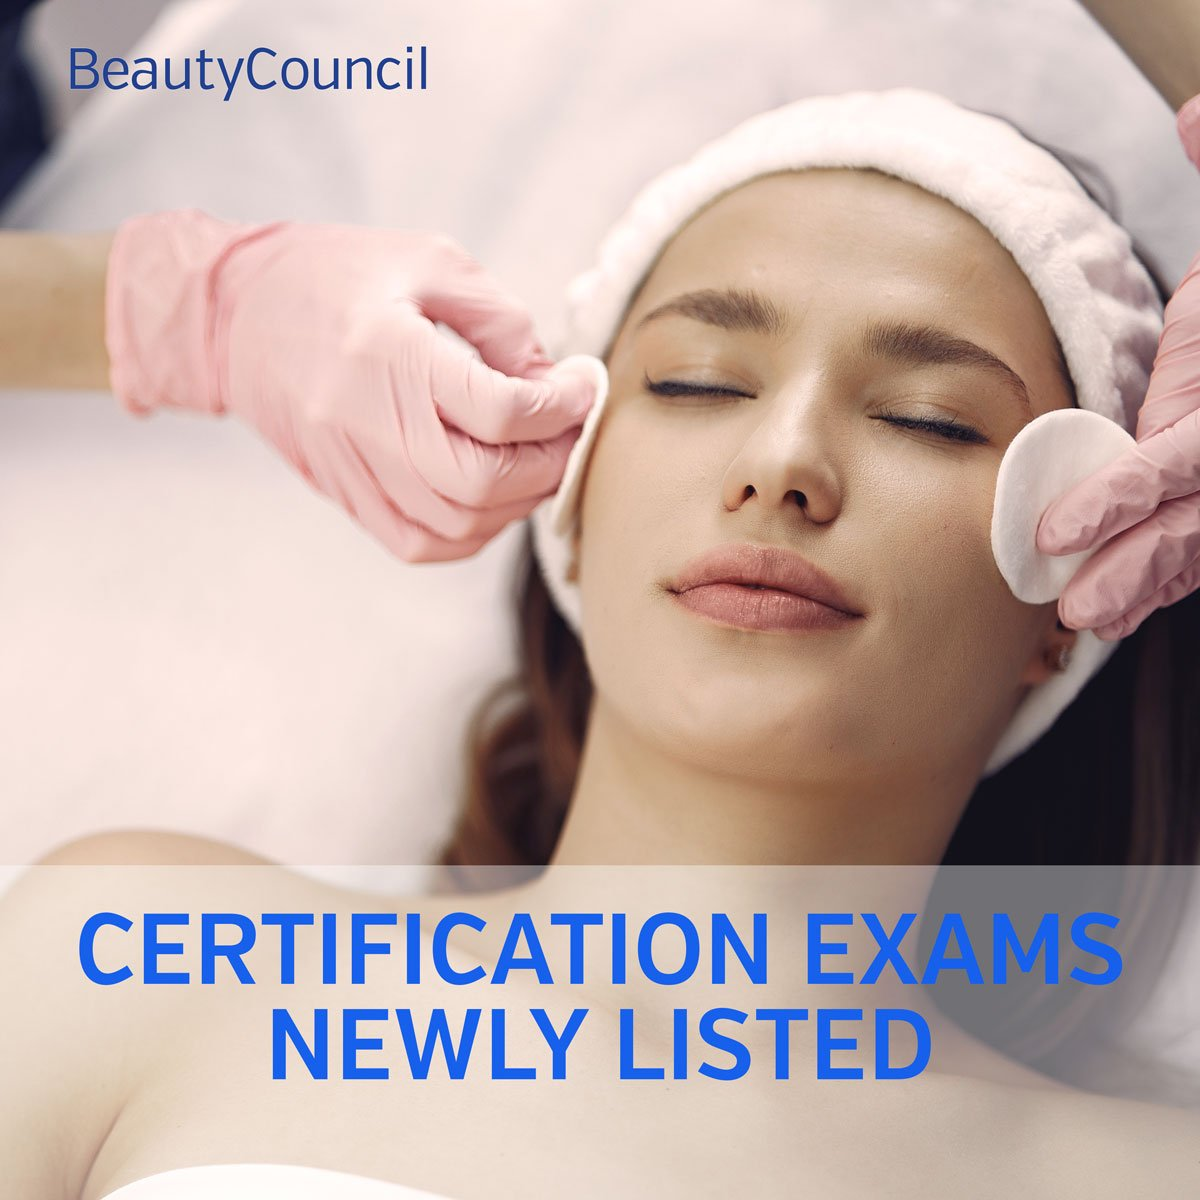 Certification exams listed for Esthetics and Waxing